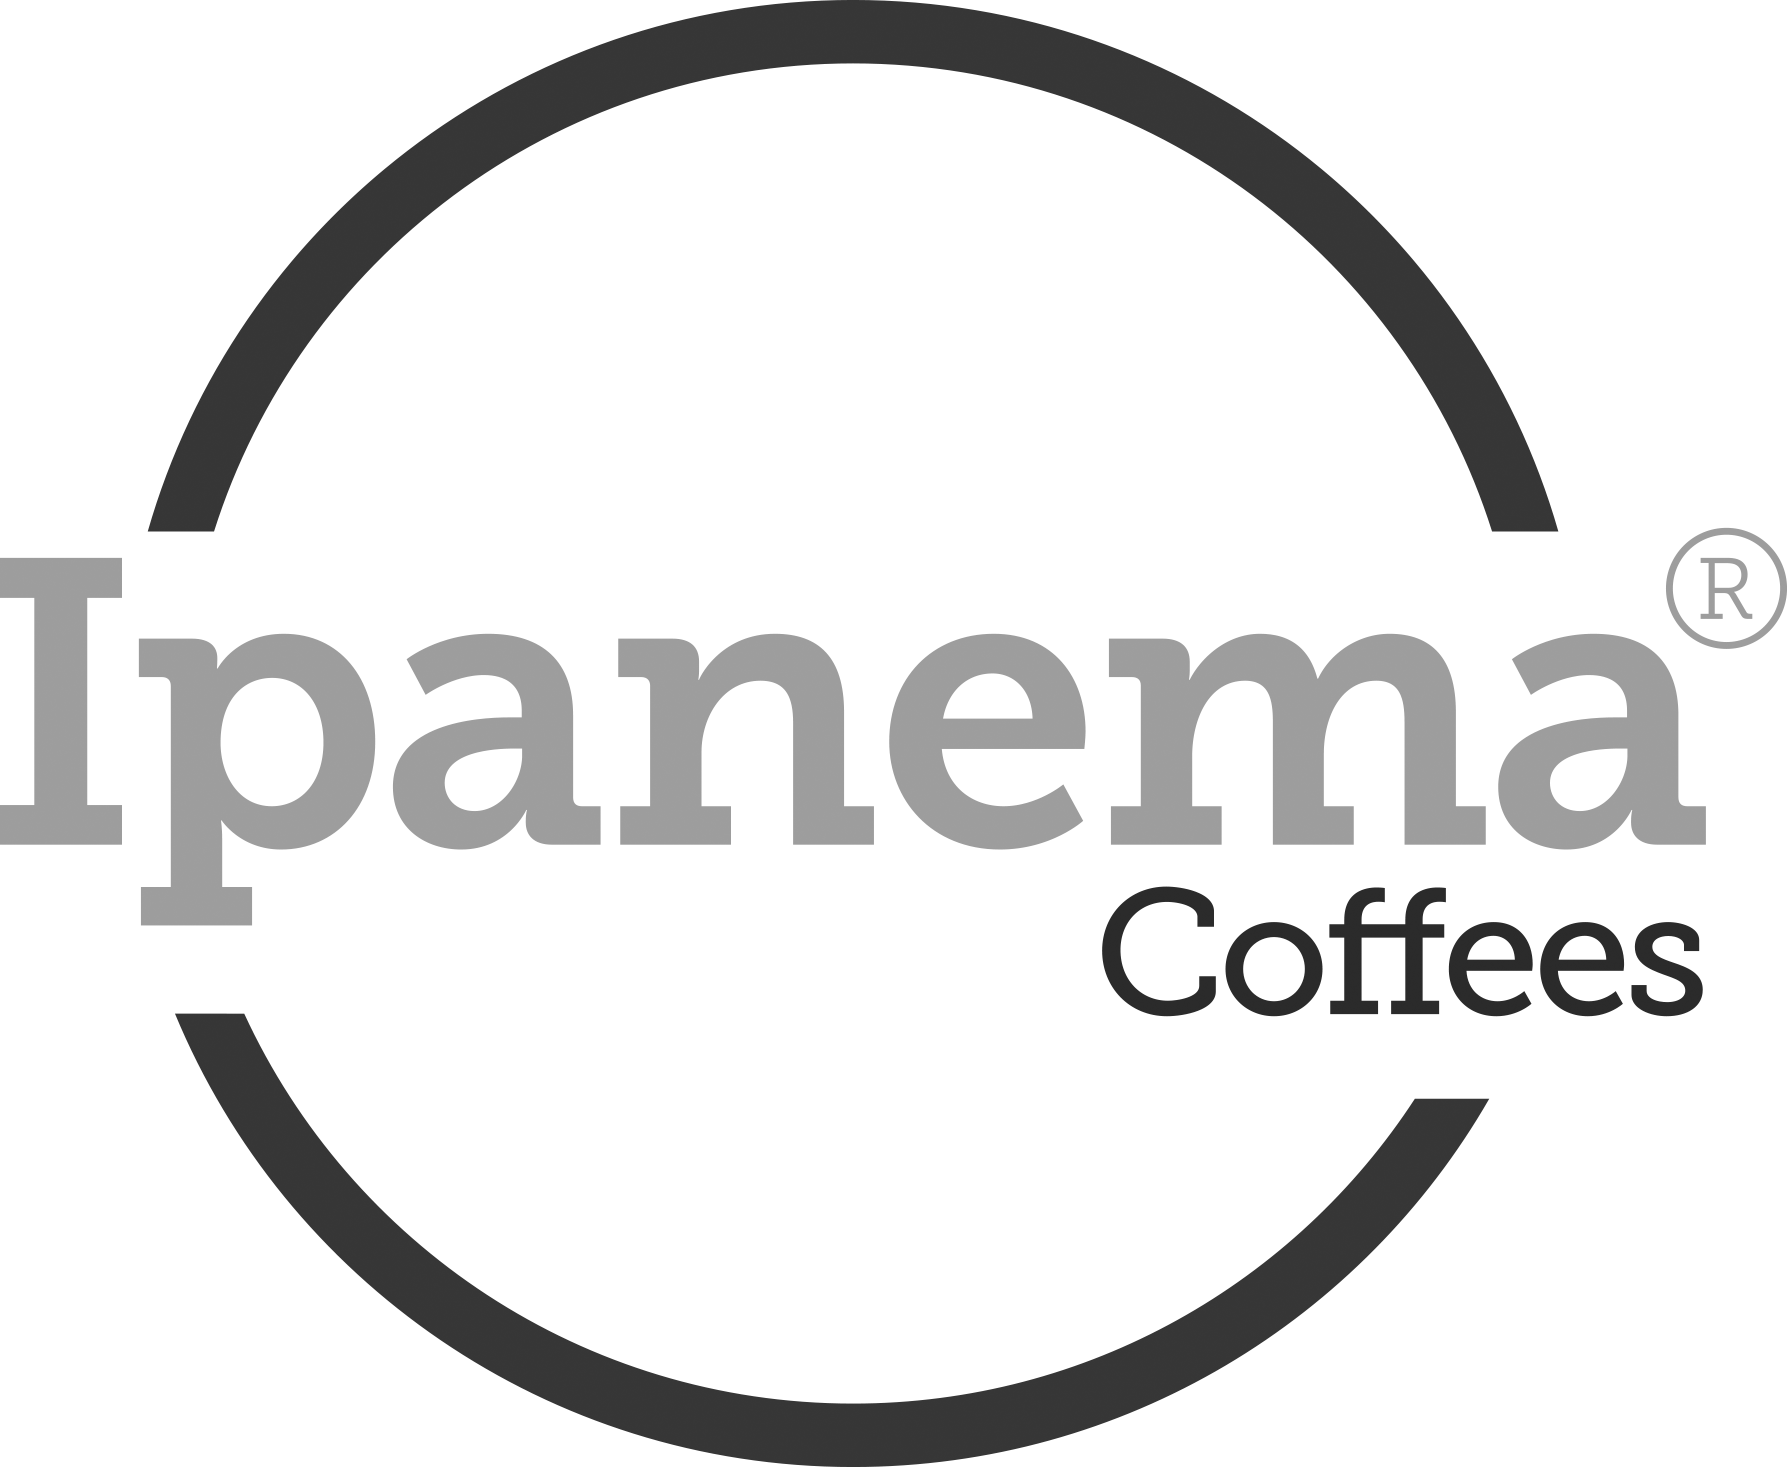 IPANEMA COFFEES_grey.png